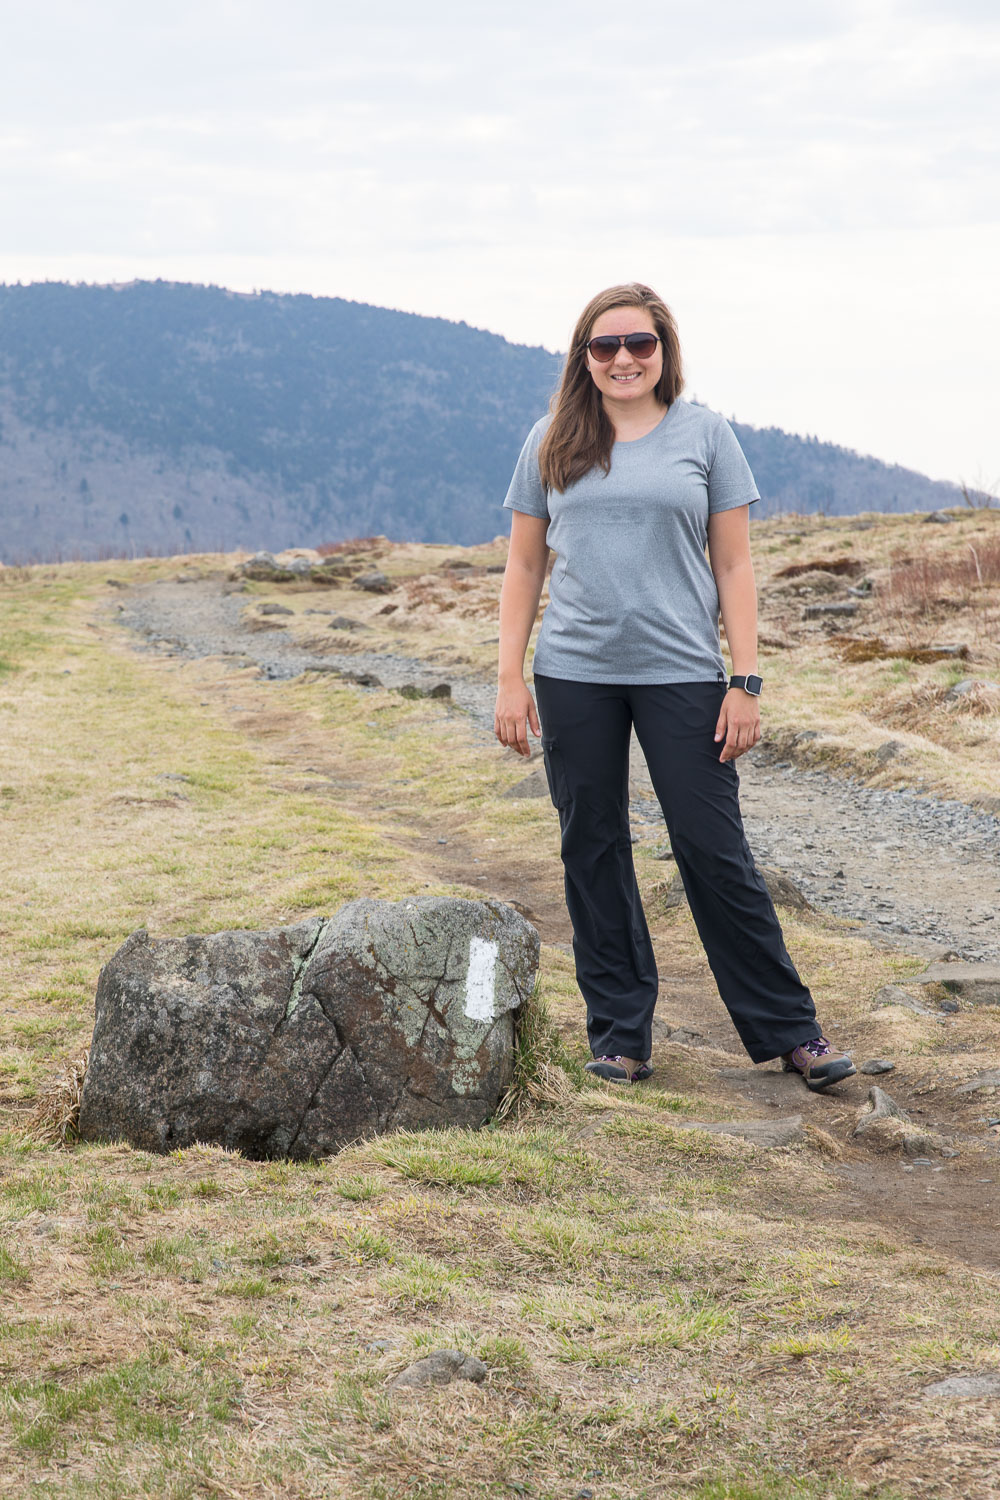 Sherry on Round Bald on the Appalachian Trail